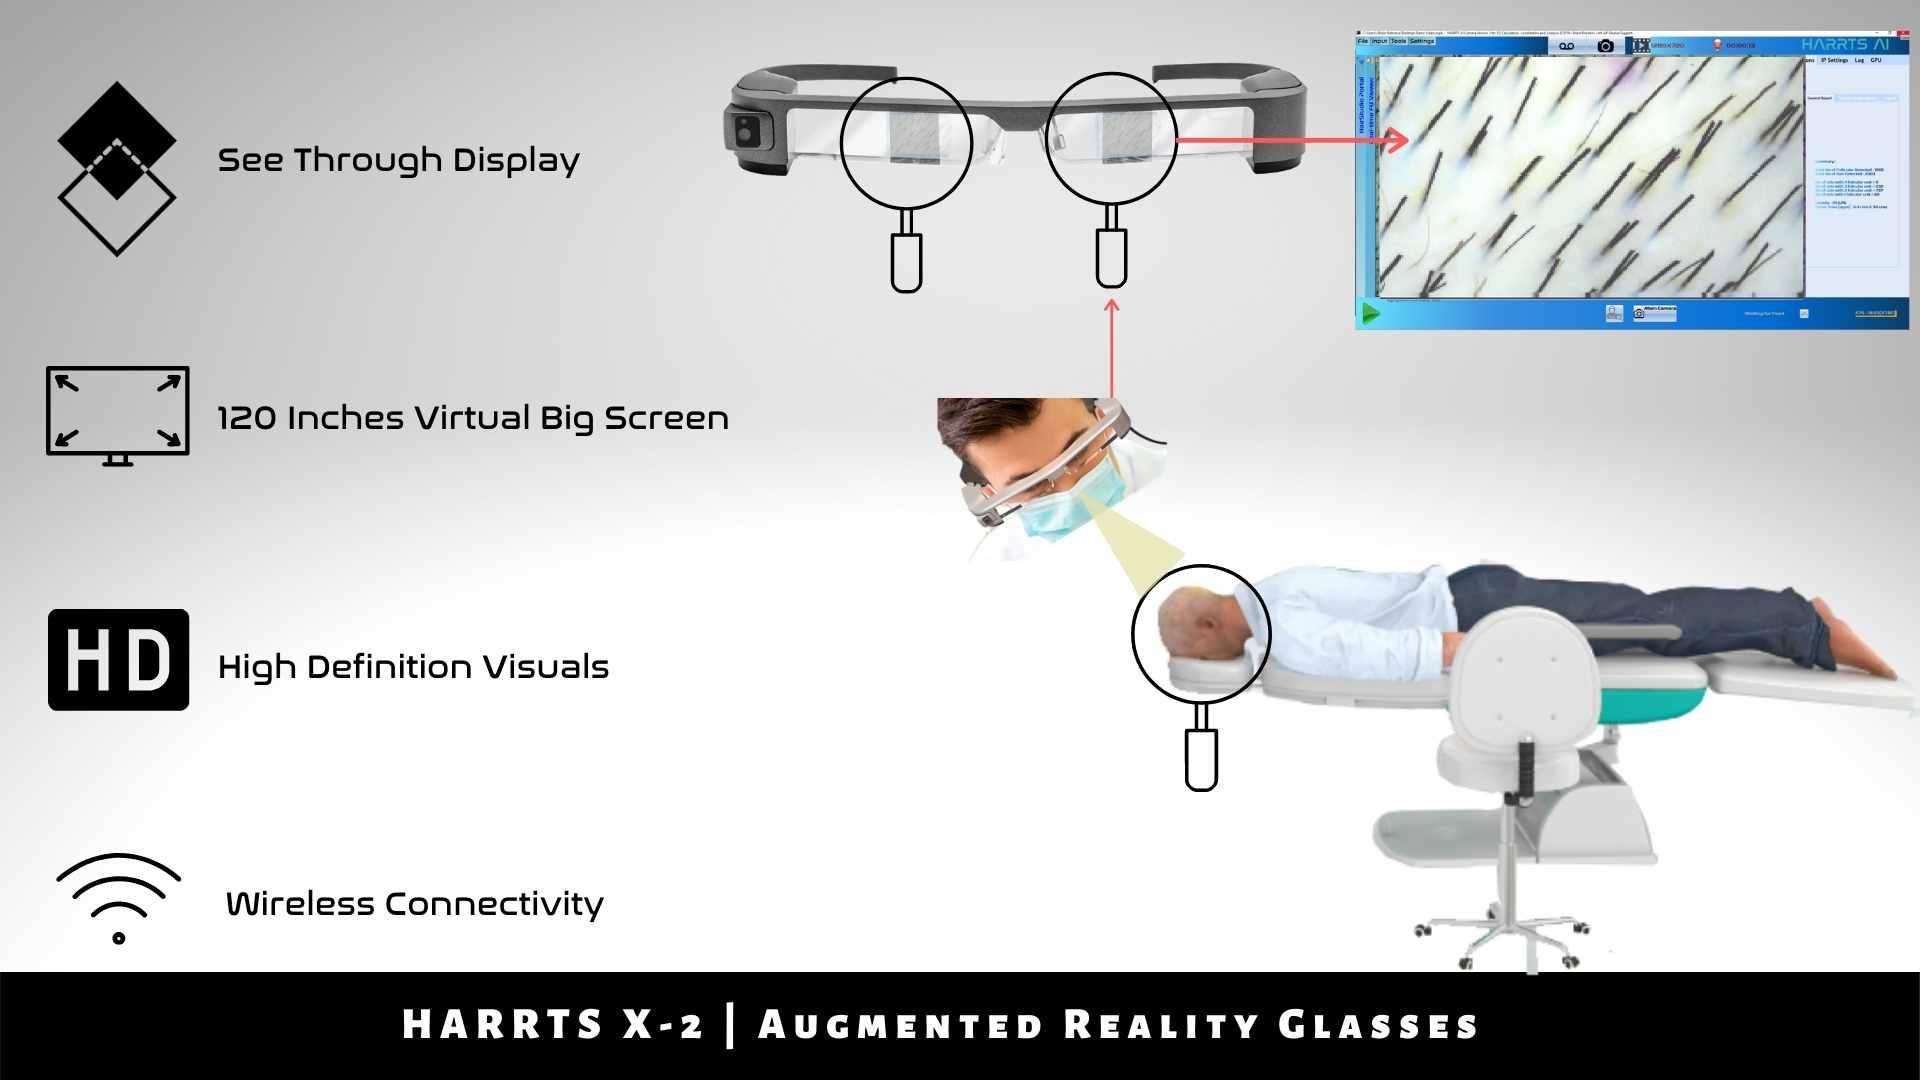 HARRTS Robotic Hair Transplant Augmented Reality Glasses